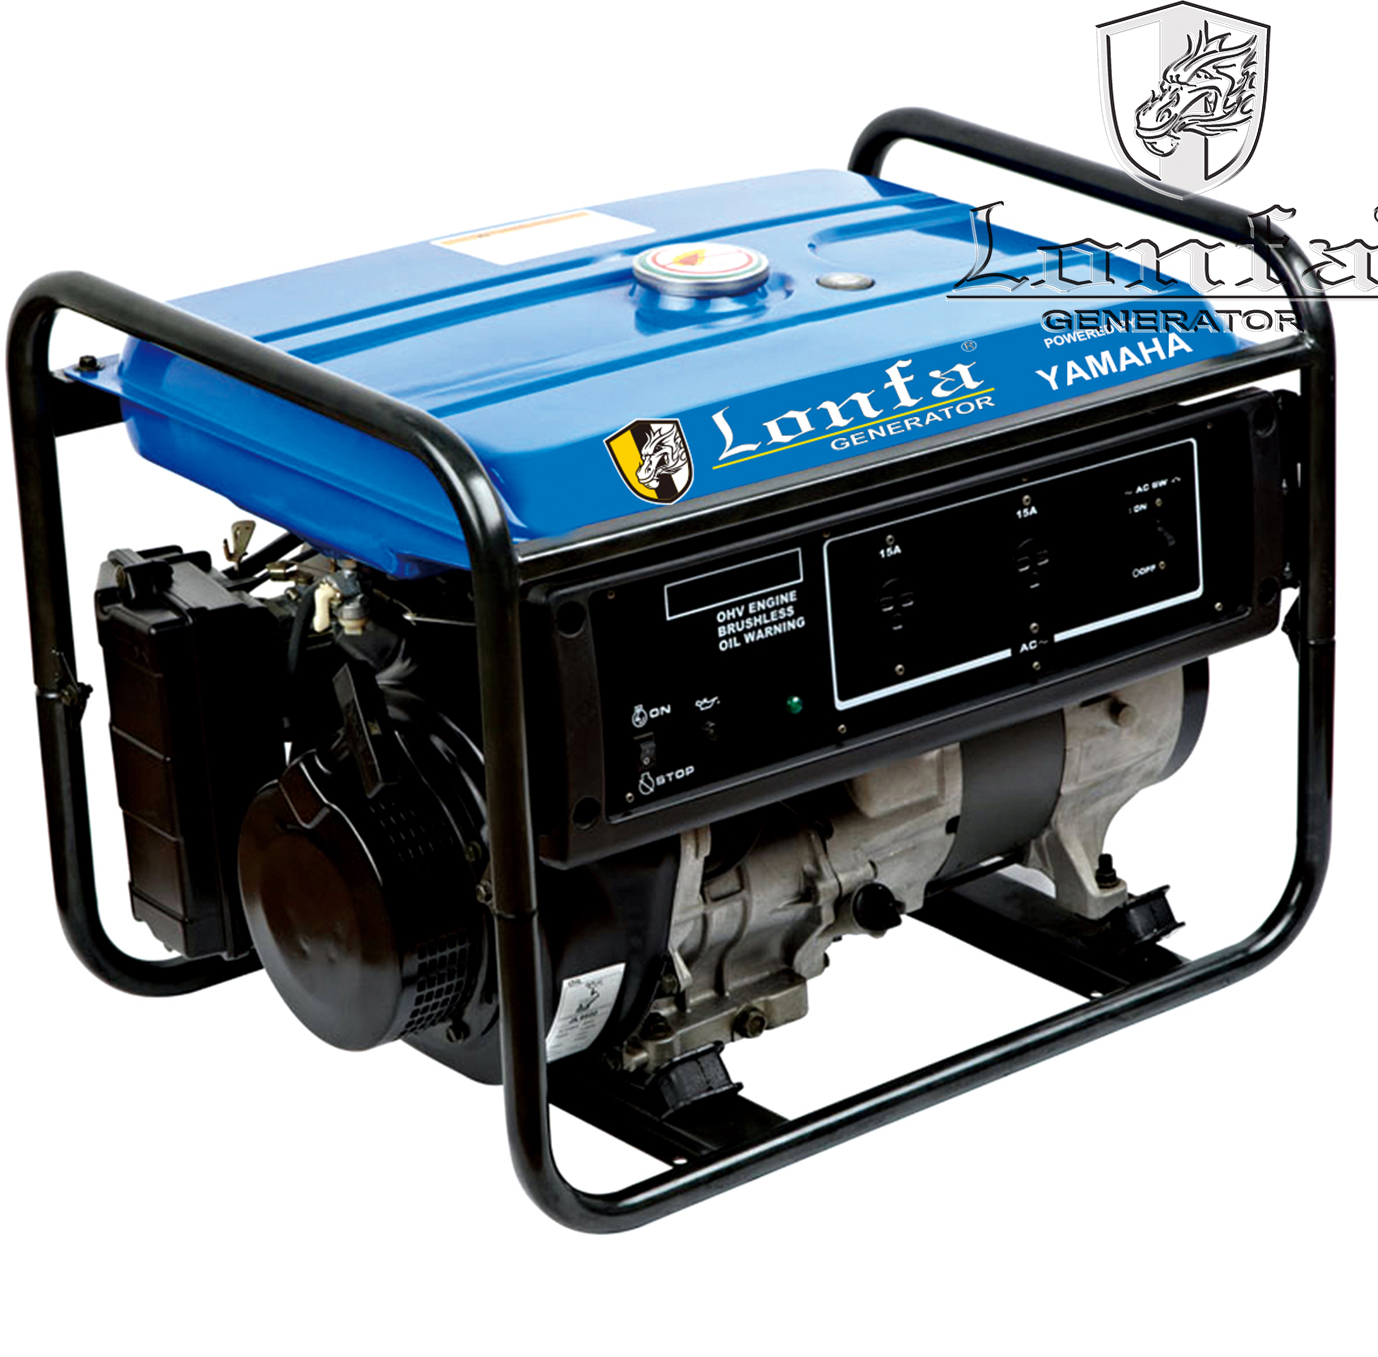 Yamaha design gasoline generator ef2600 buy yamaha for Yamaha generator for sale